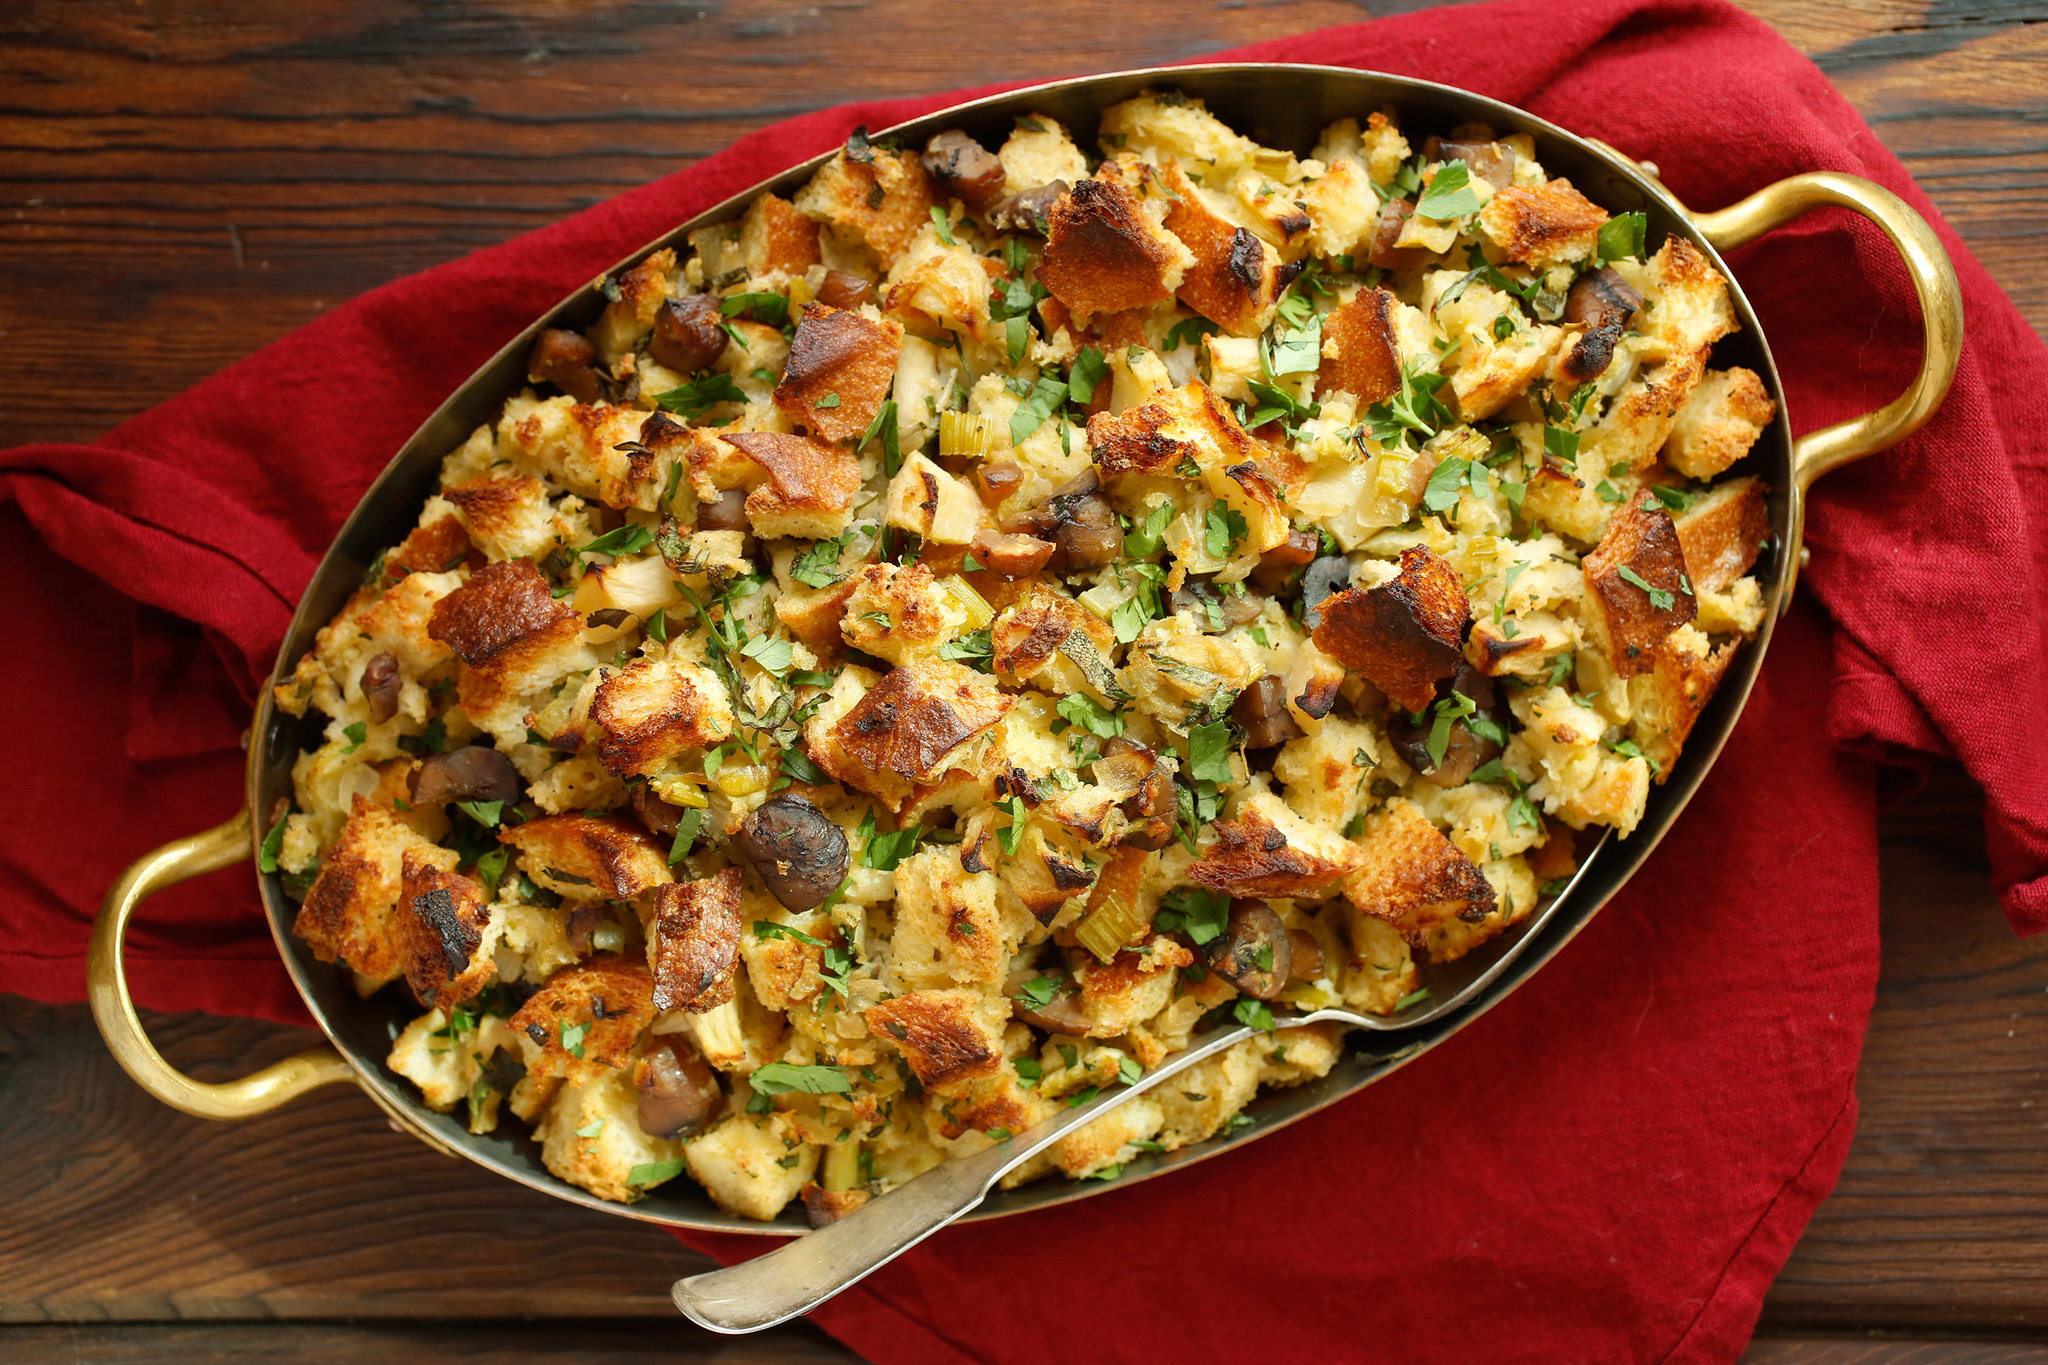 Thanksgiving Turkey Recipe With Stuffing  Thanksgiving Dressing Recipe NYT Cooking